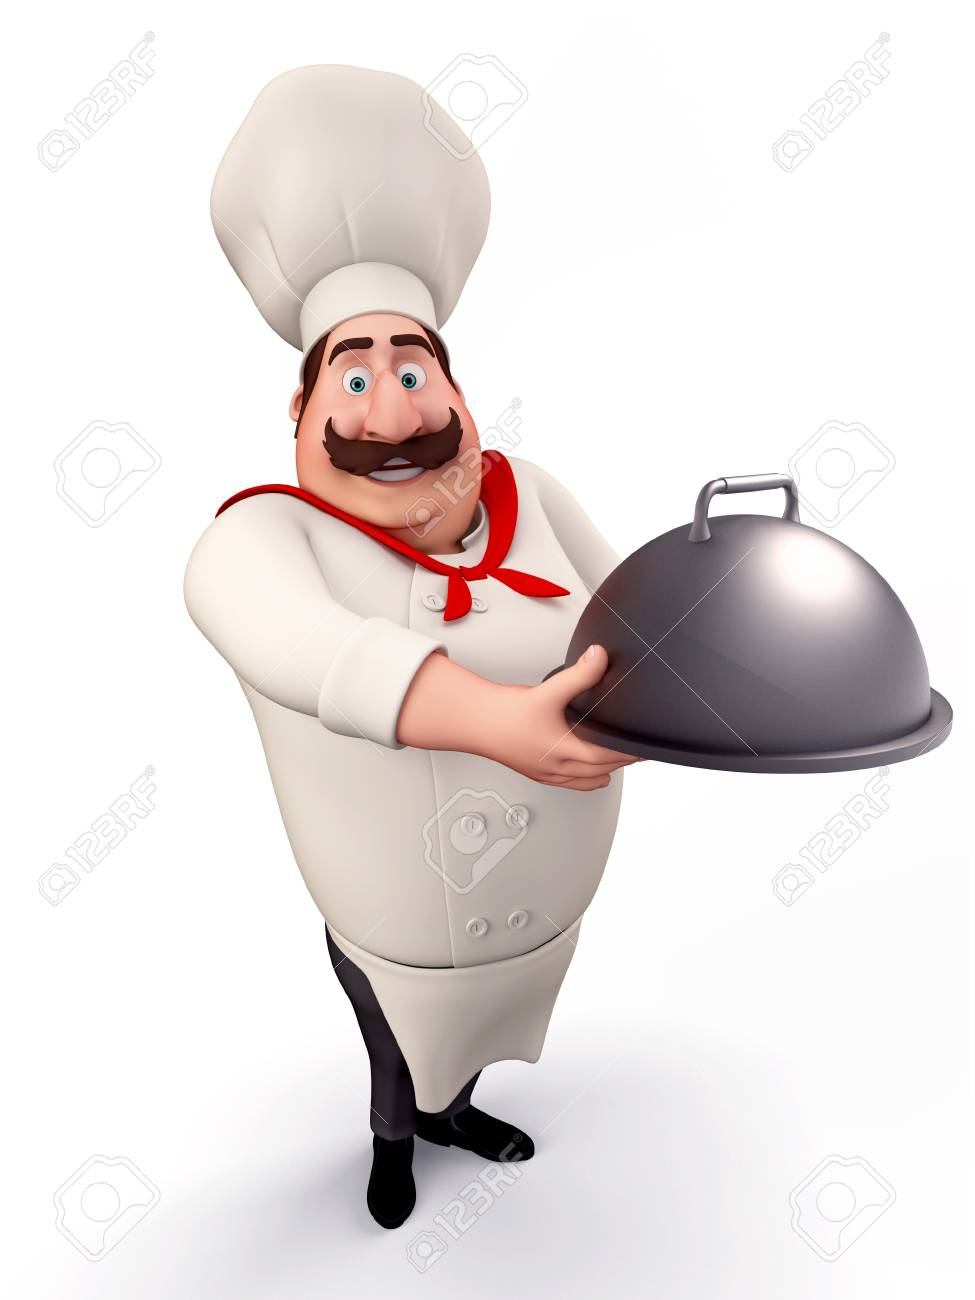 Chef with big bowl Stock Photo - 13577333